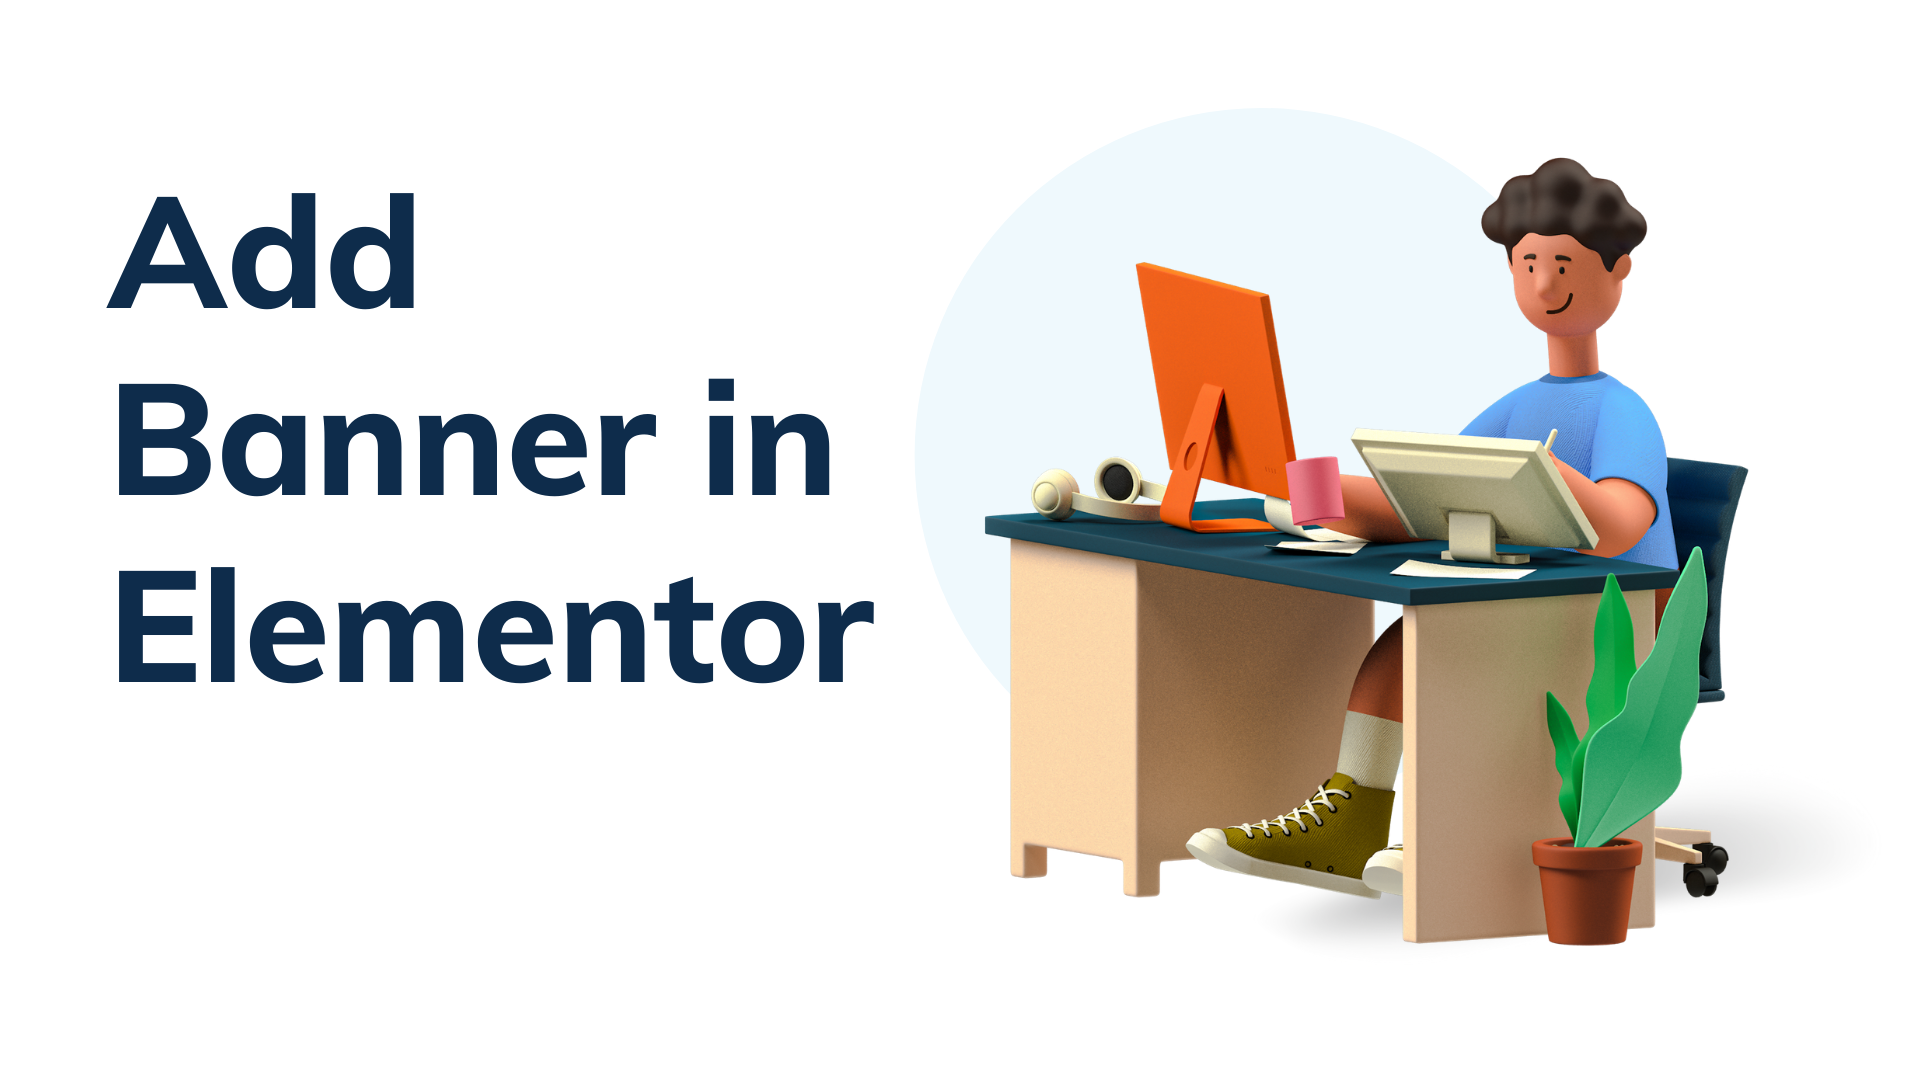 How to Add Banner in Elementor